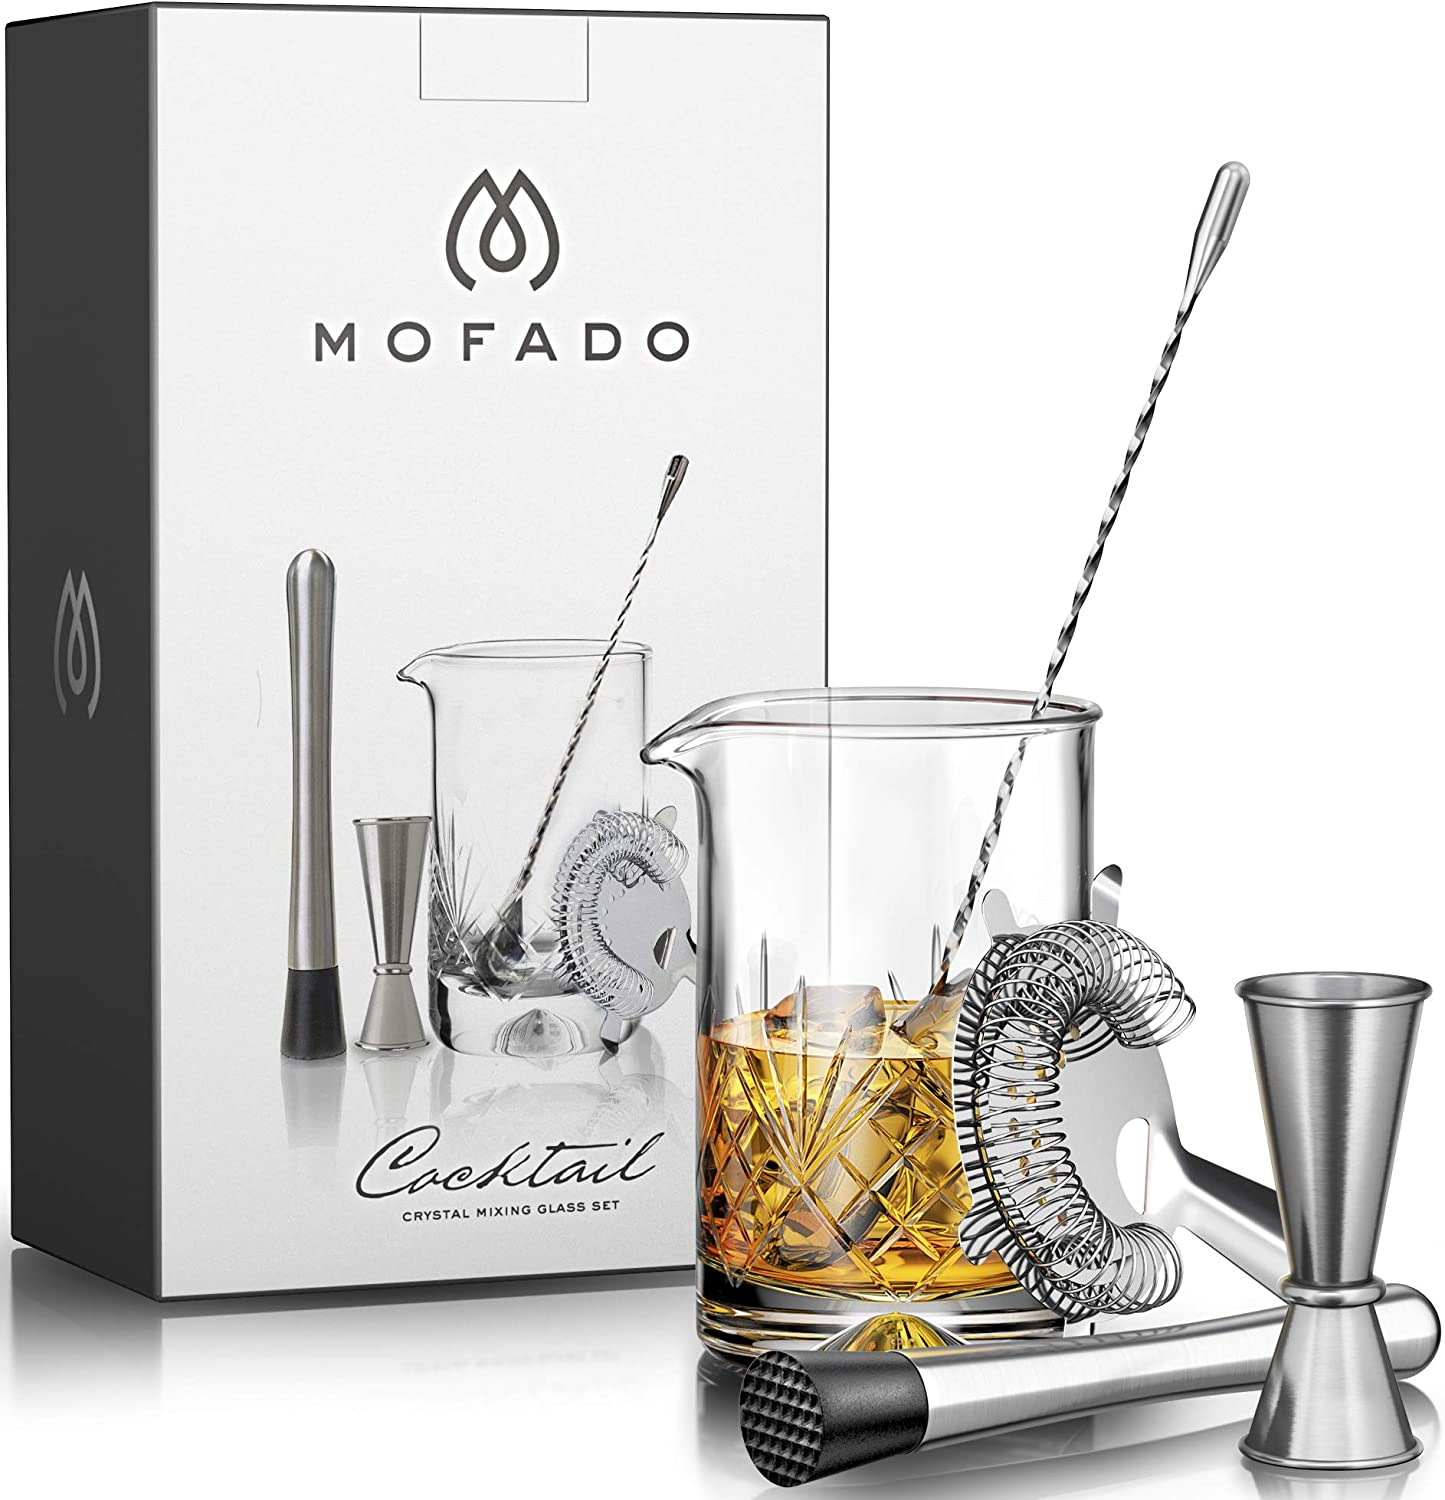 Premium Cocktail Mixing Glass Set – Thick Bottom 18oz – 550ml – Seamless Lead Free Crystal Mixing Glass, Spoon, Jigger, Strainer Muddler – Professional Quality – Makes a Great Gift